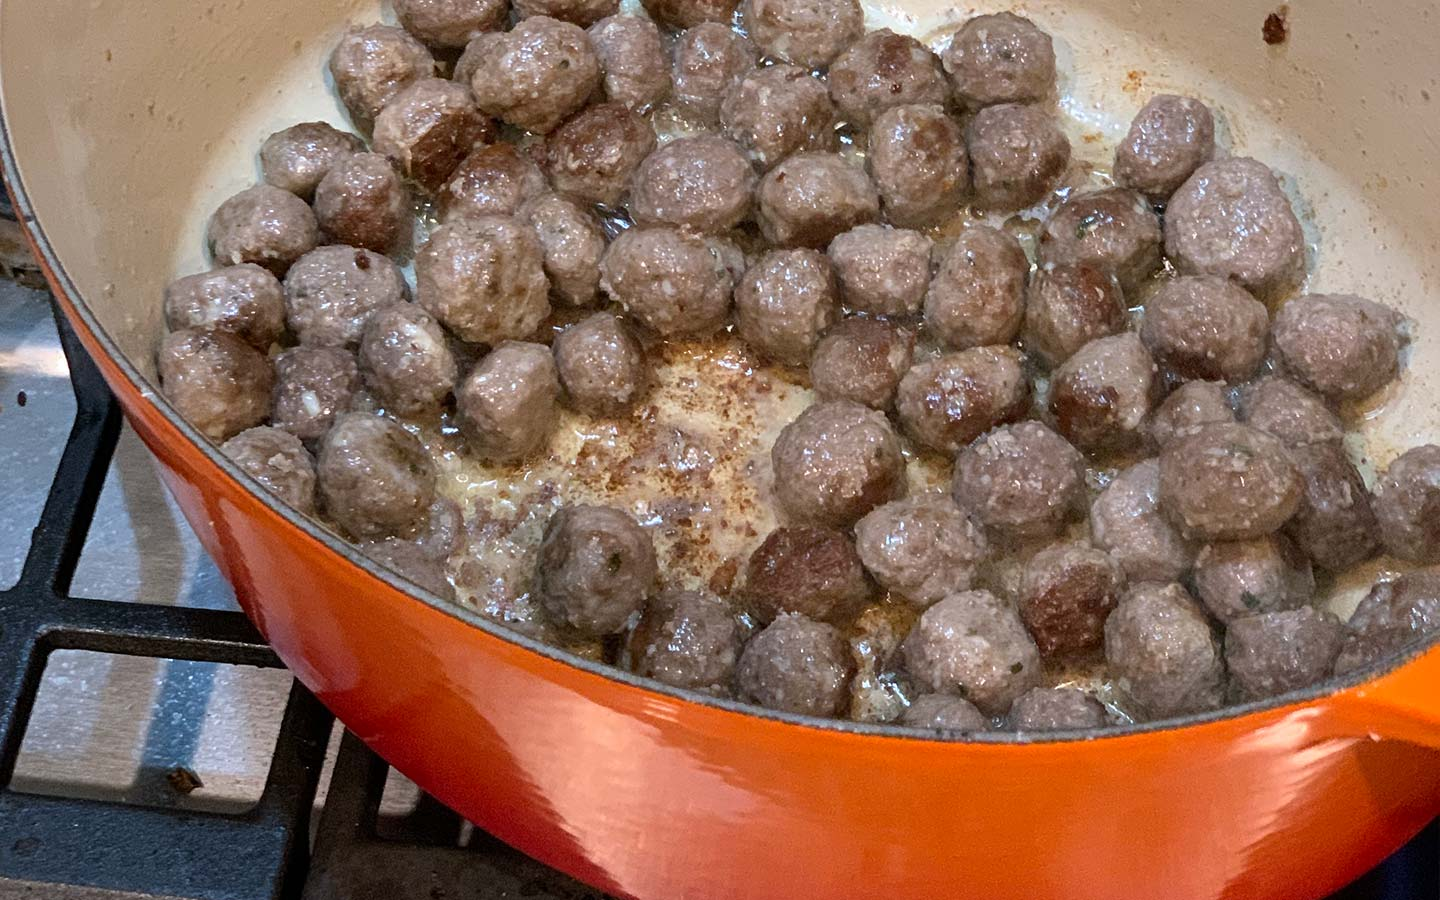 Italian Wedding Soup: Reverse sear meatballs.